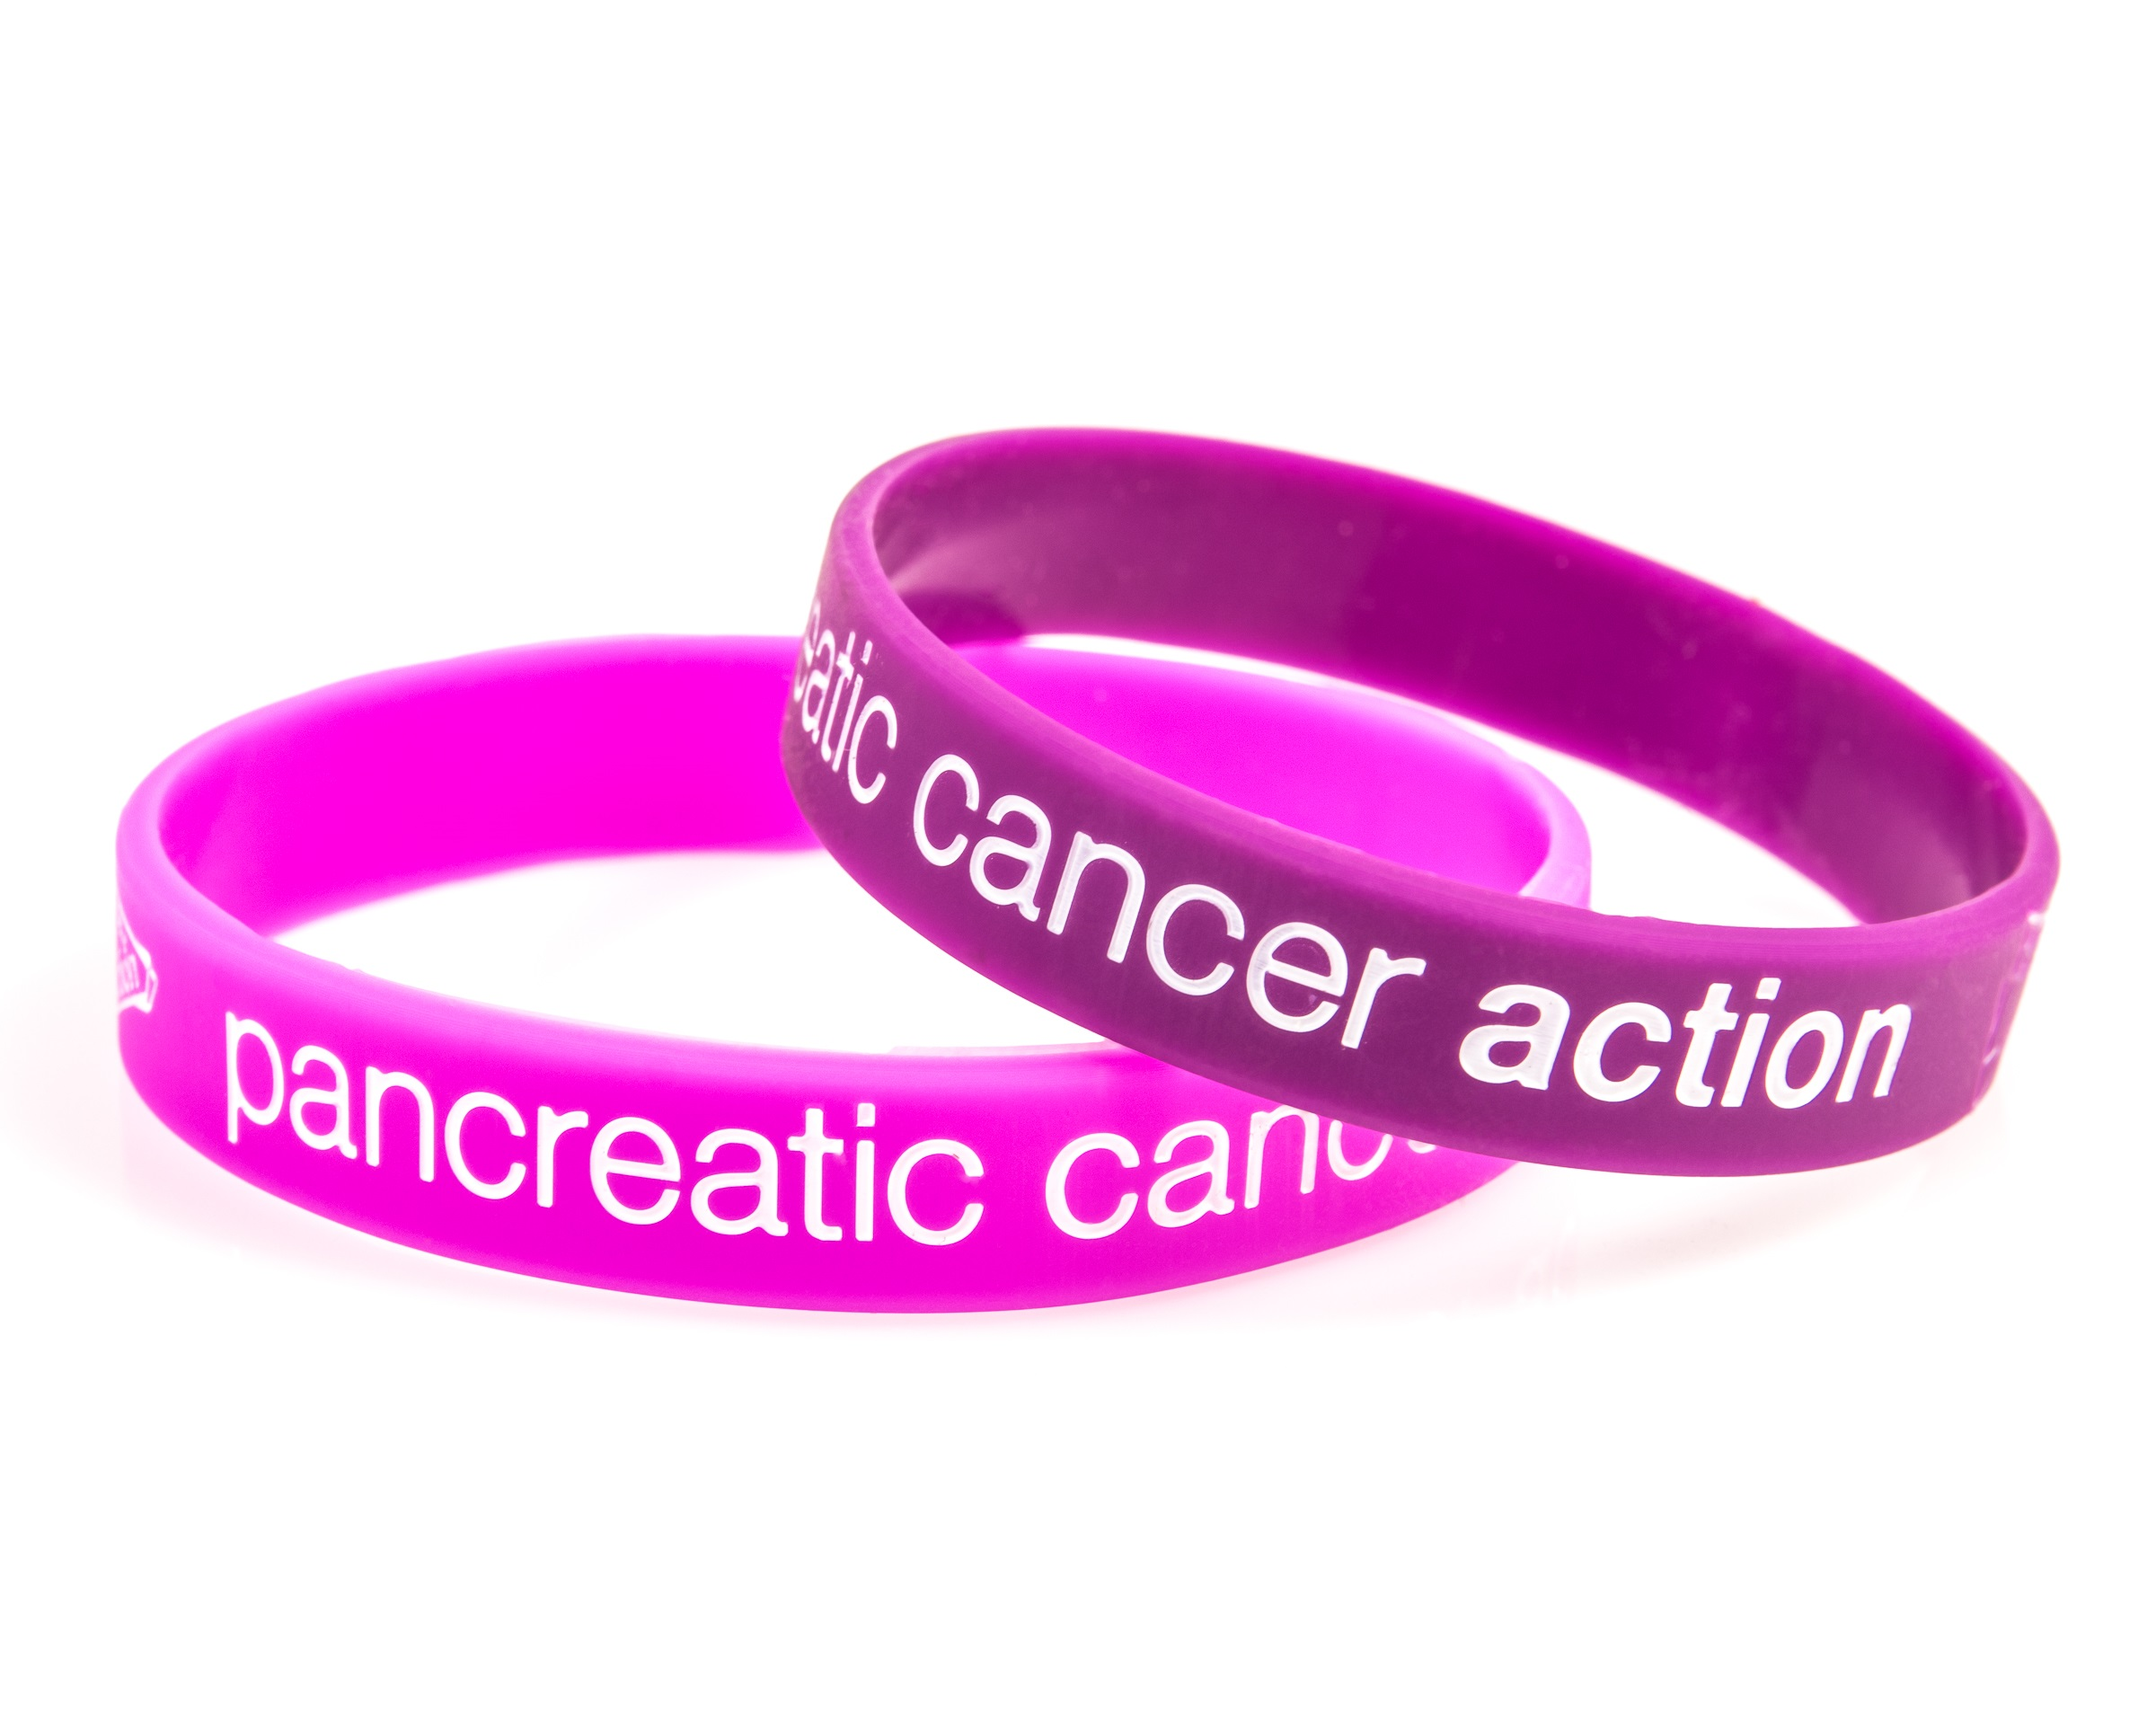 our best everyone for amazing ideas design awareness way la by bold to a support designed clever ribbons kris cheap troops endometriosis on colors is bracelets bracelet images know with u great this pinterest idea cancer